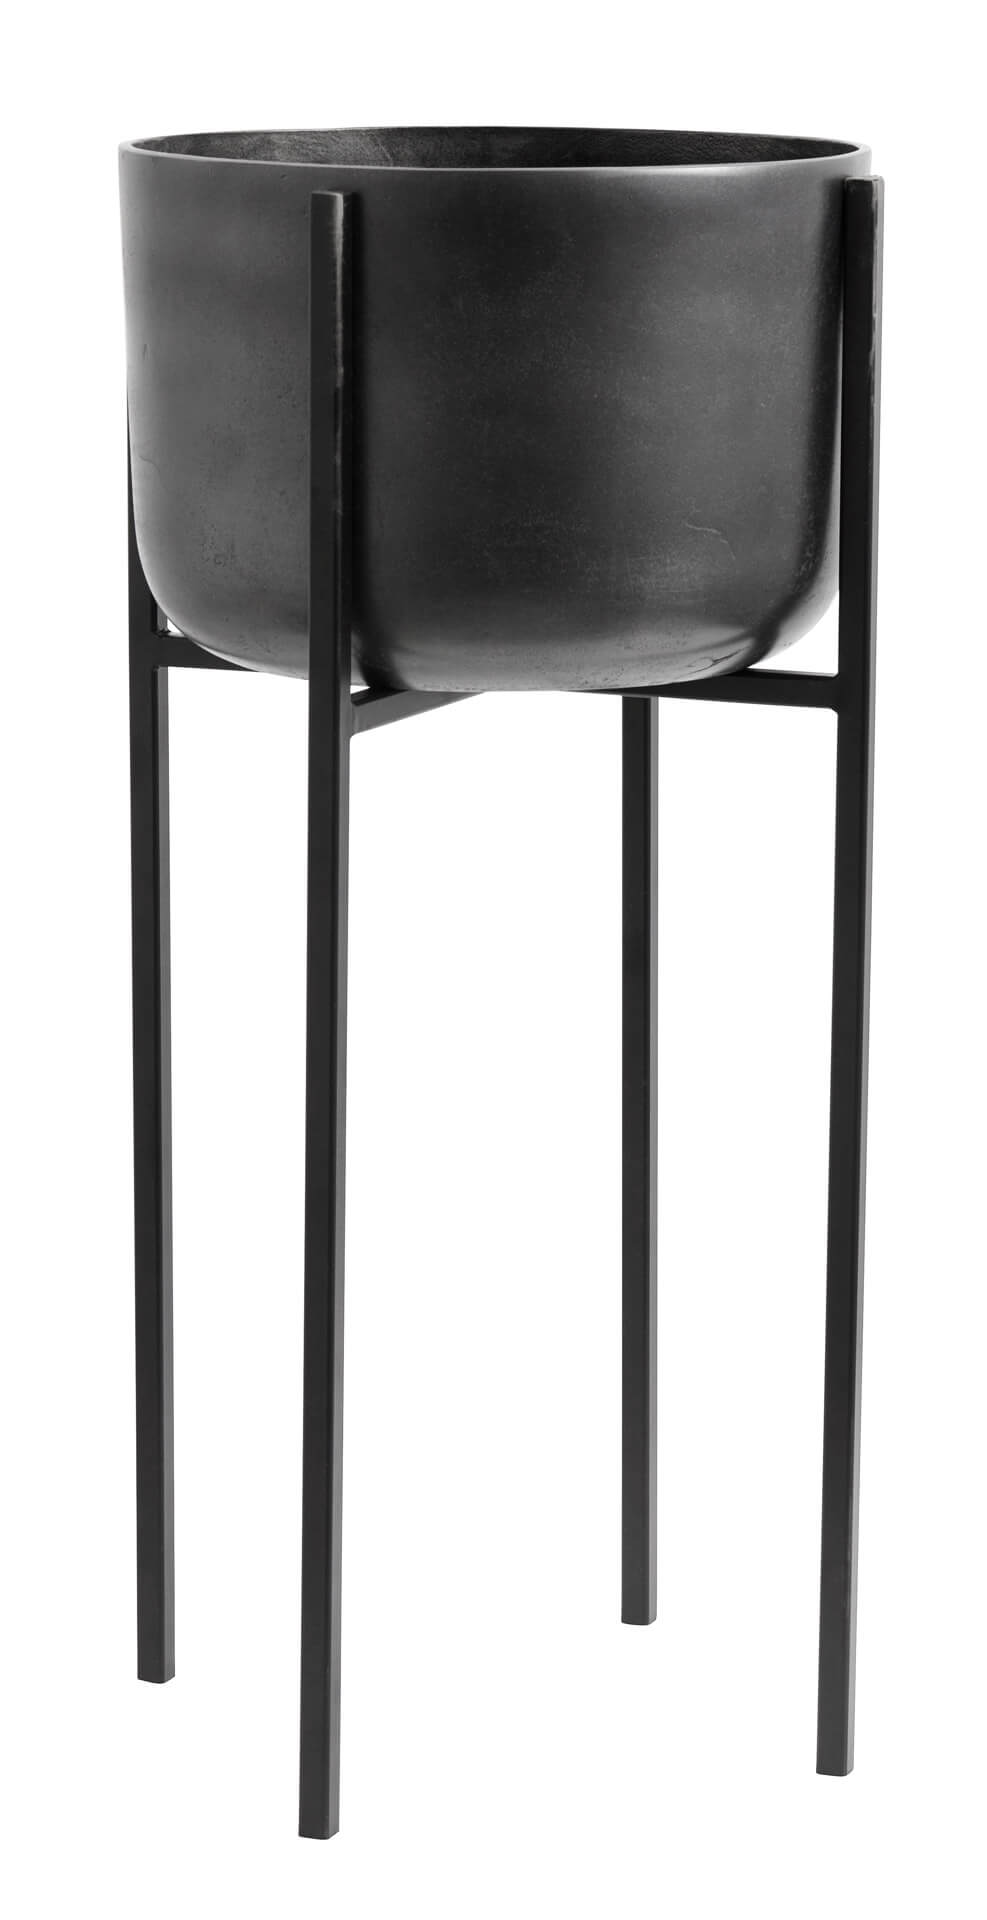 Nordal Planter On Stand Large Black Oxidised